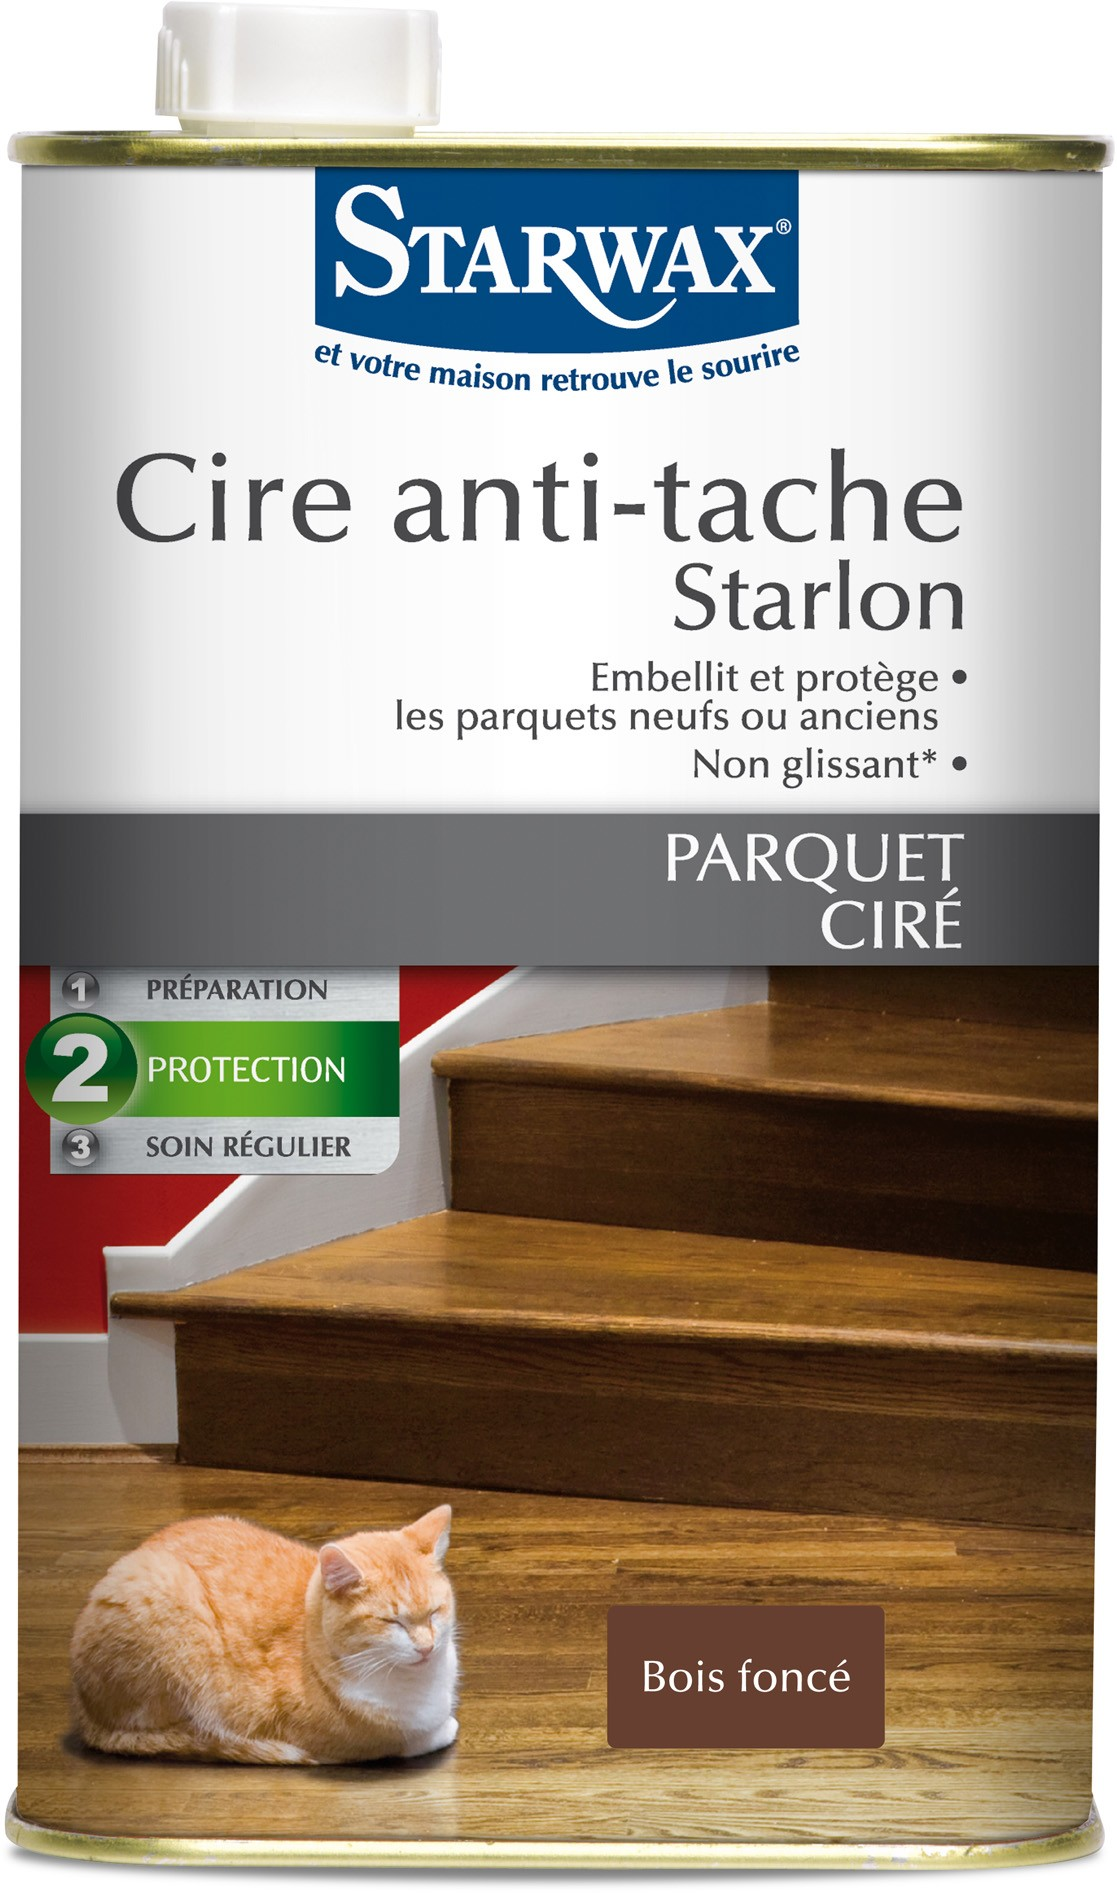 cire anti tache starlon pour parquet cir 1 l bois fonc. Black Bedroom Furniture Sets. Home Design Ideas